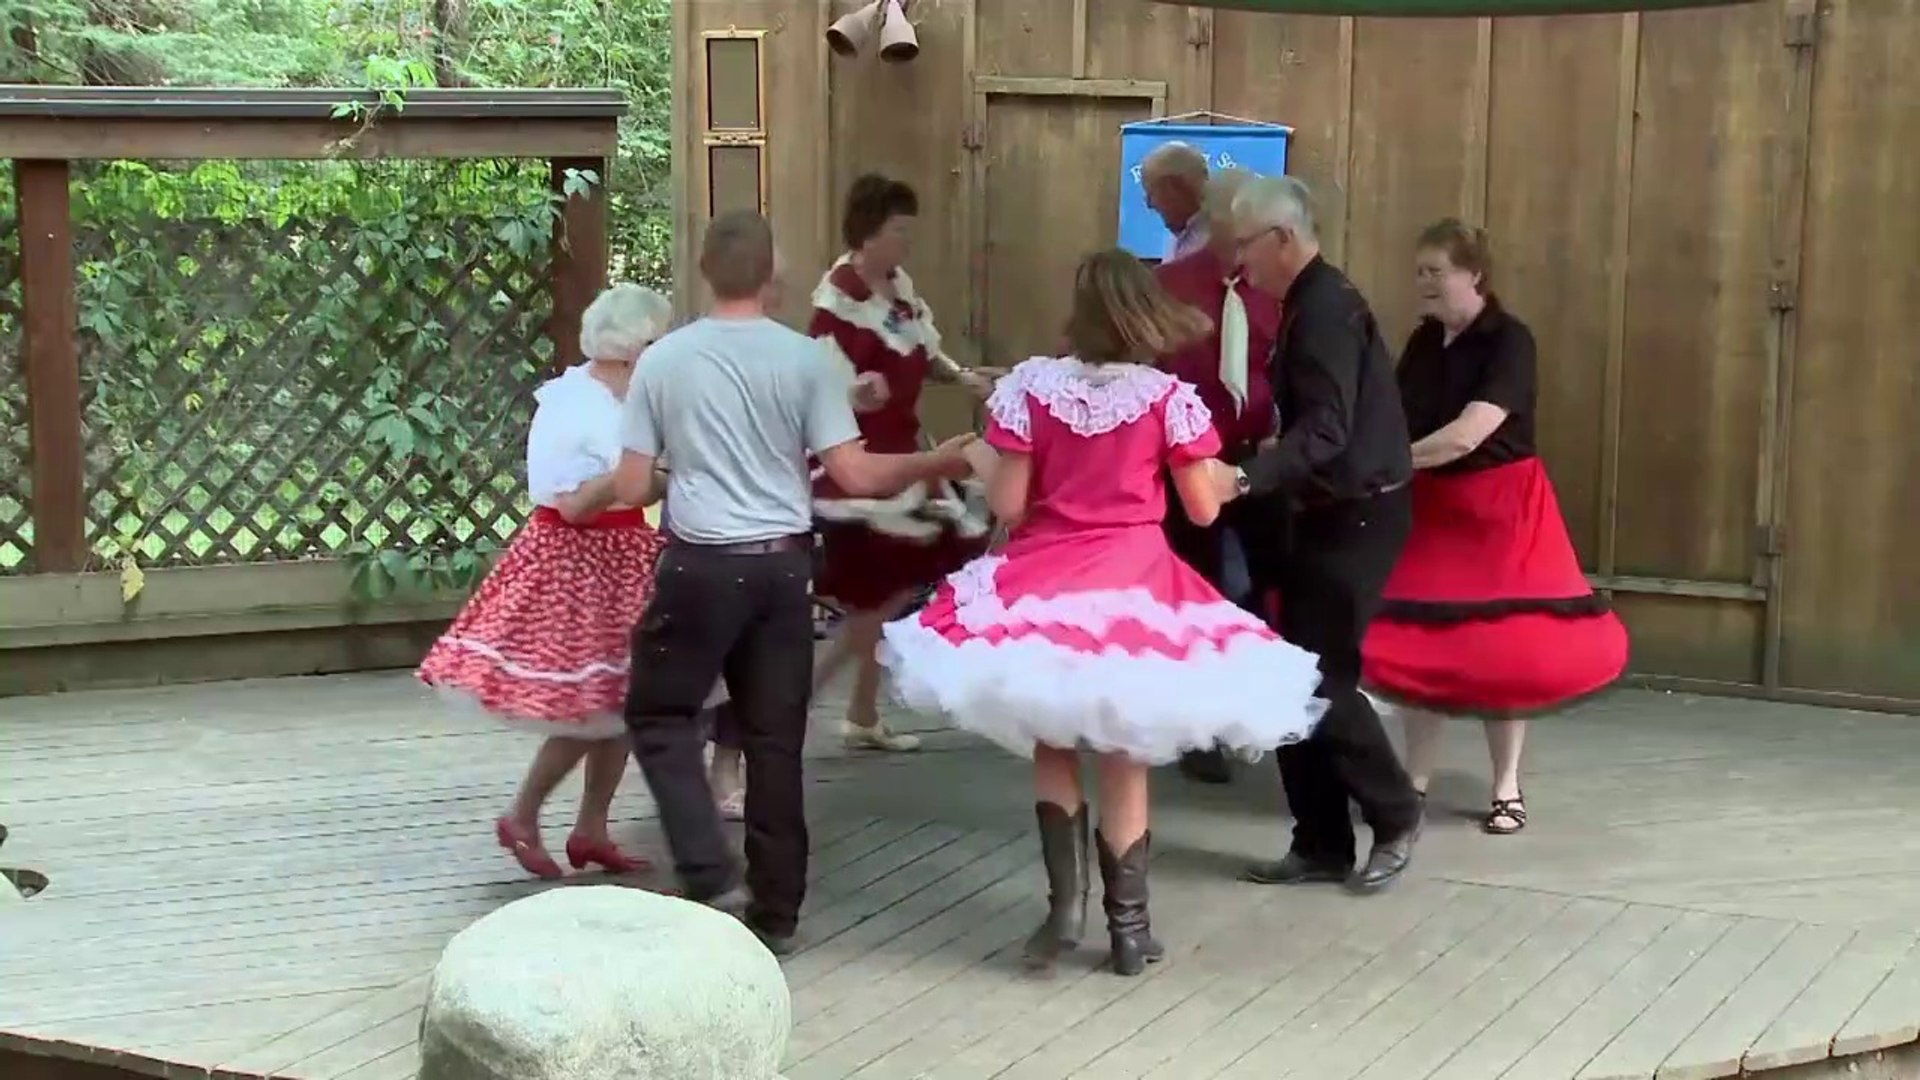 Square dance world beautiful dance